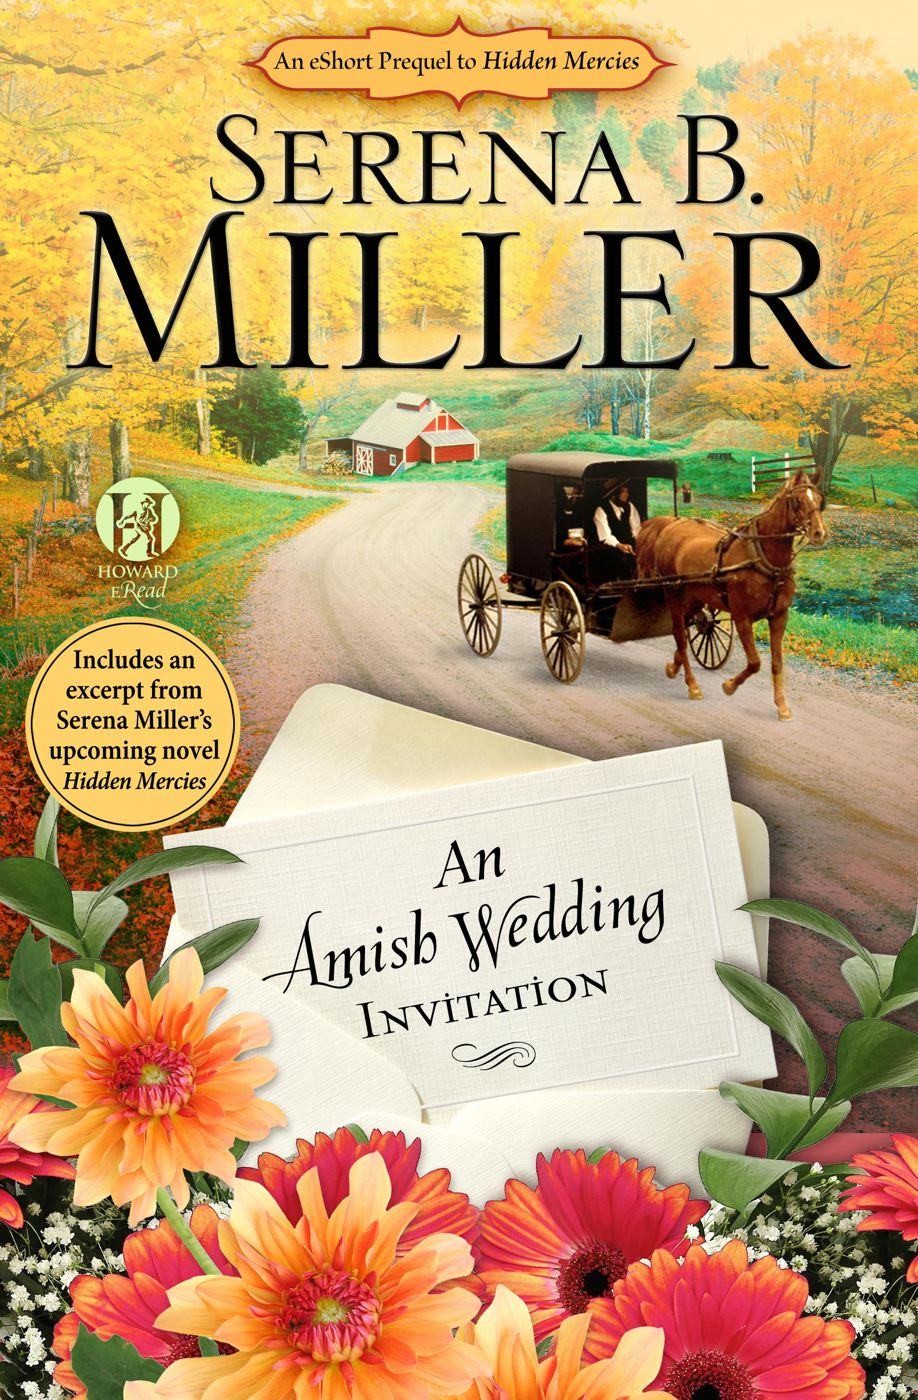 An Amish Wedding Invitation; An eShort Account of a Real Amish Wedding By: Serena B Miller